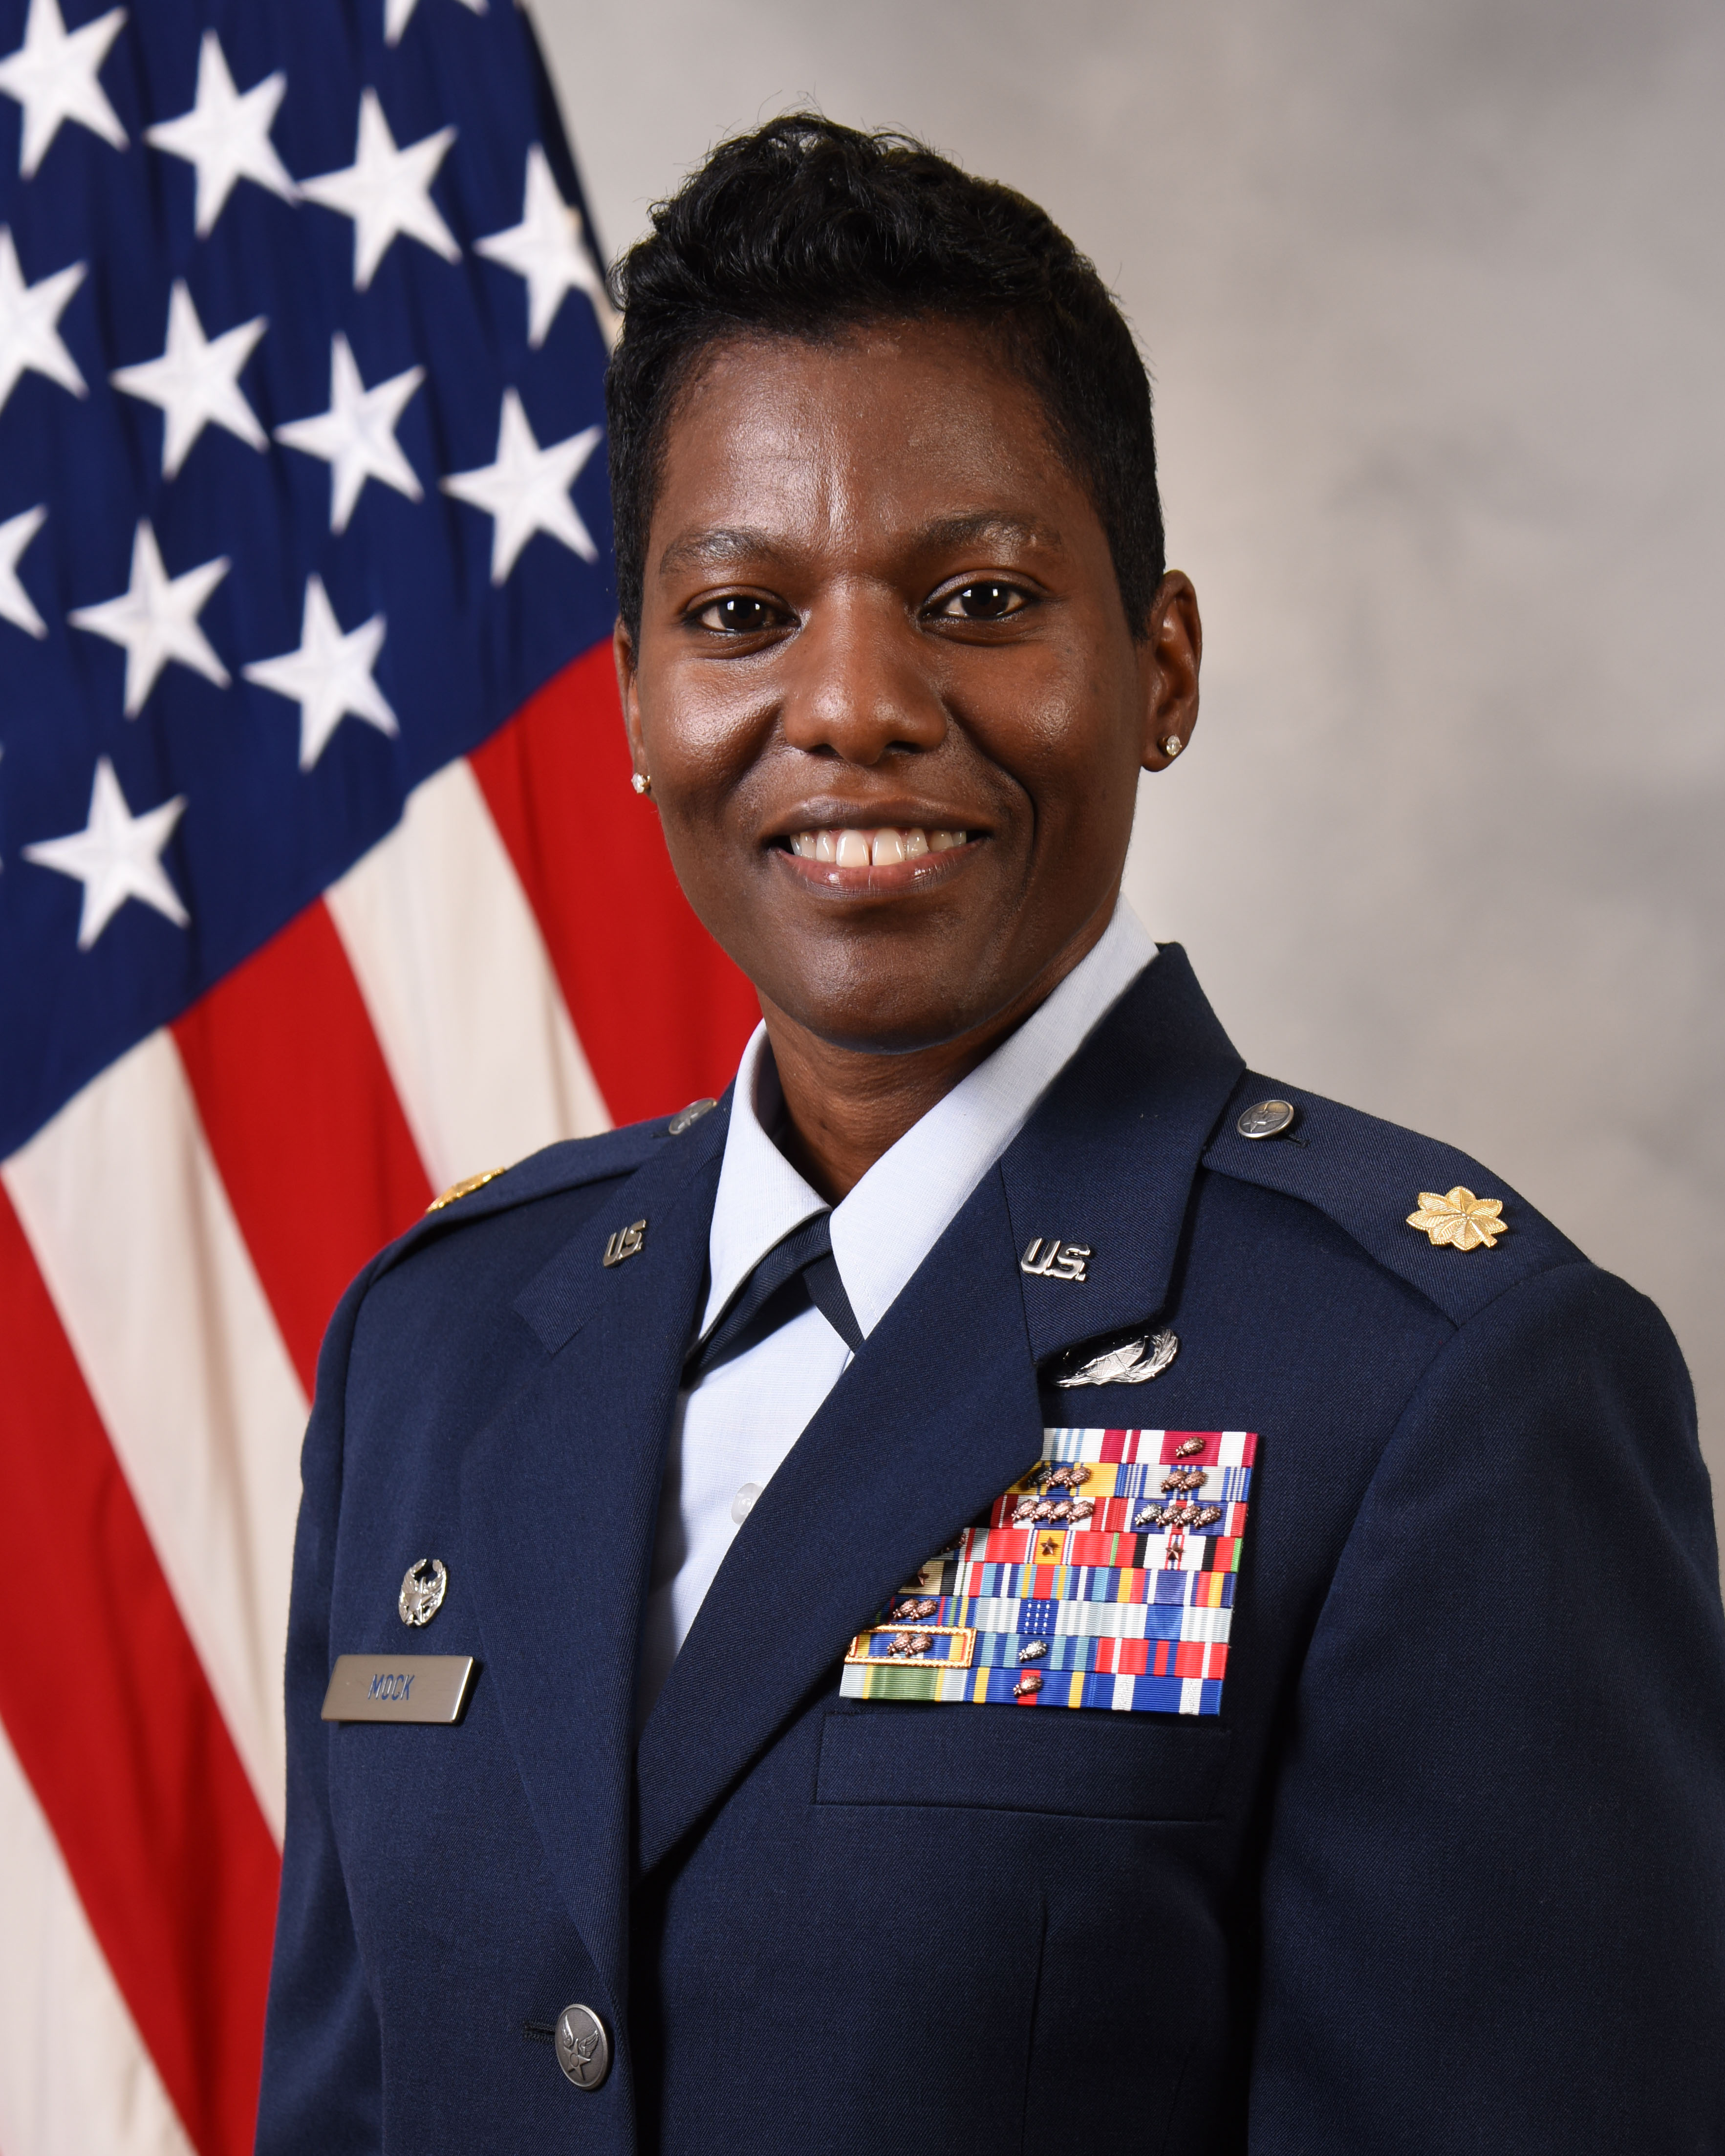 Maj. Karen Mock official photo with American flag background